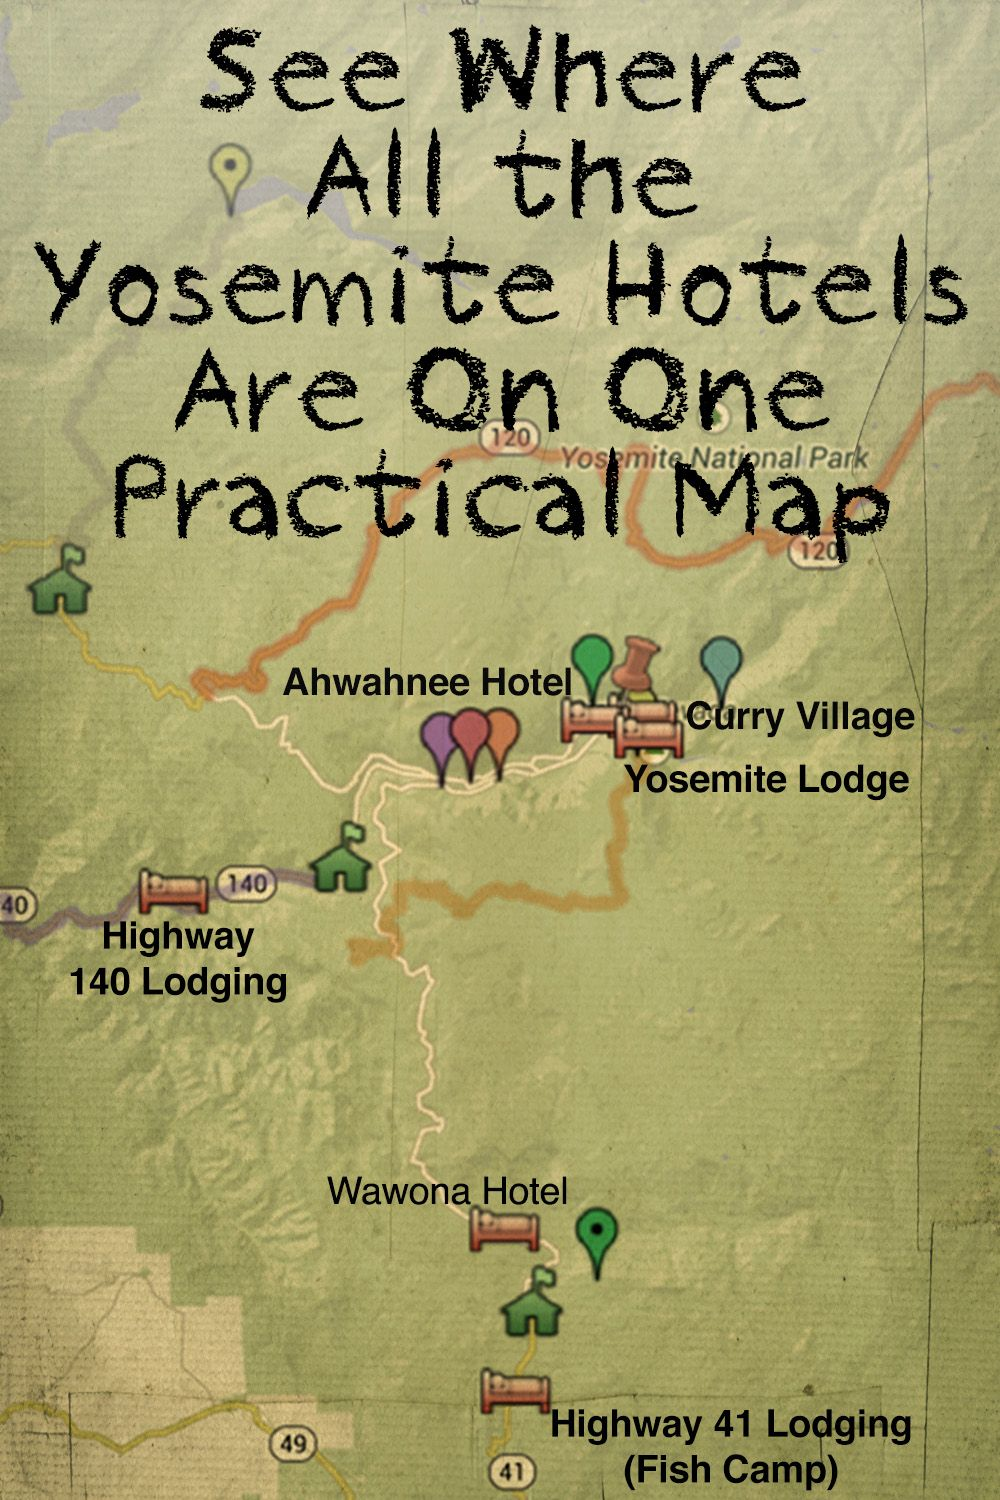 Yosemite Hotels Map on yosemite history, yosemite in april, yosemite fishing, yosemite swimming, yosemite trails, yosemite wildflowers, yosemite accommodations, yosemite beach, yosemite flowers, yosemite screenshots, yosemite in october, yosemite national location, yosemite point, yosemite curry village cabins interior, yosemite deaths, yosemite lost brother, yosemite cedar lodge rooms, yosemite ahwahnee cottages, yosemite rafting, yosemite restaurants,